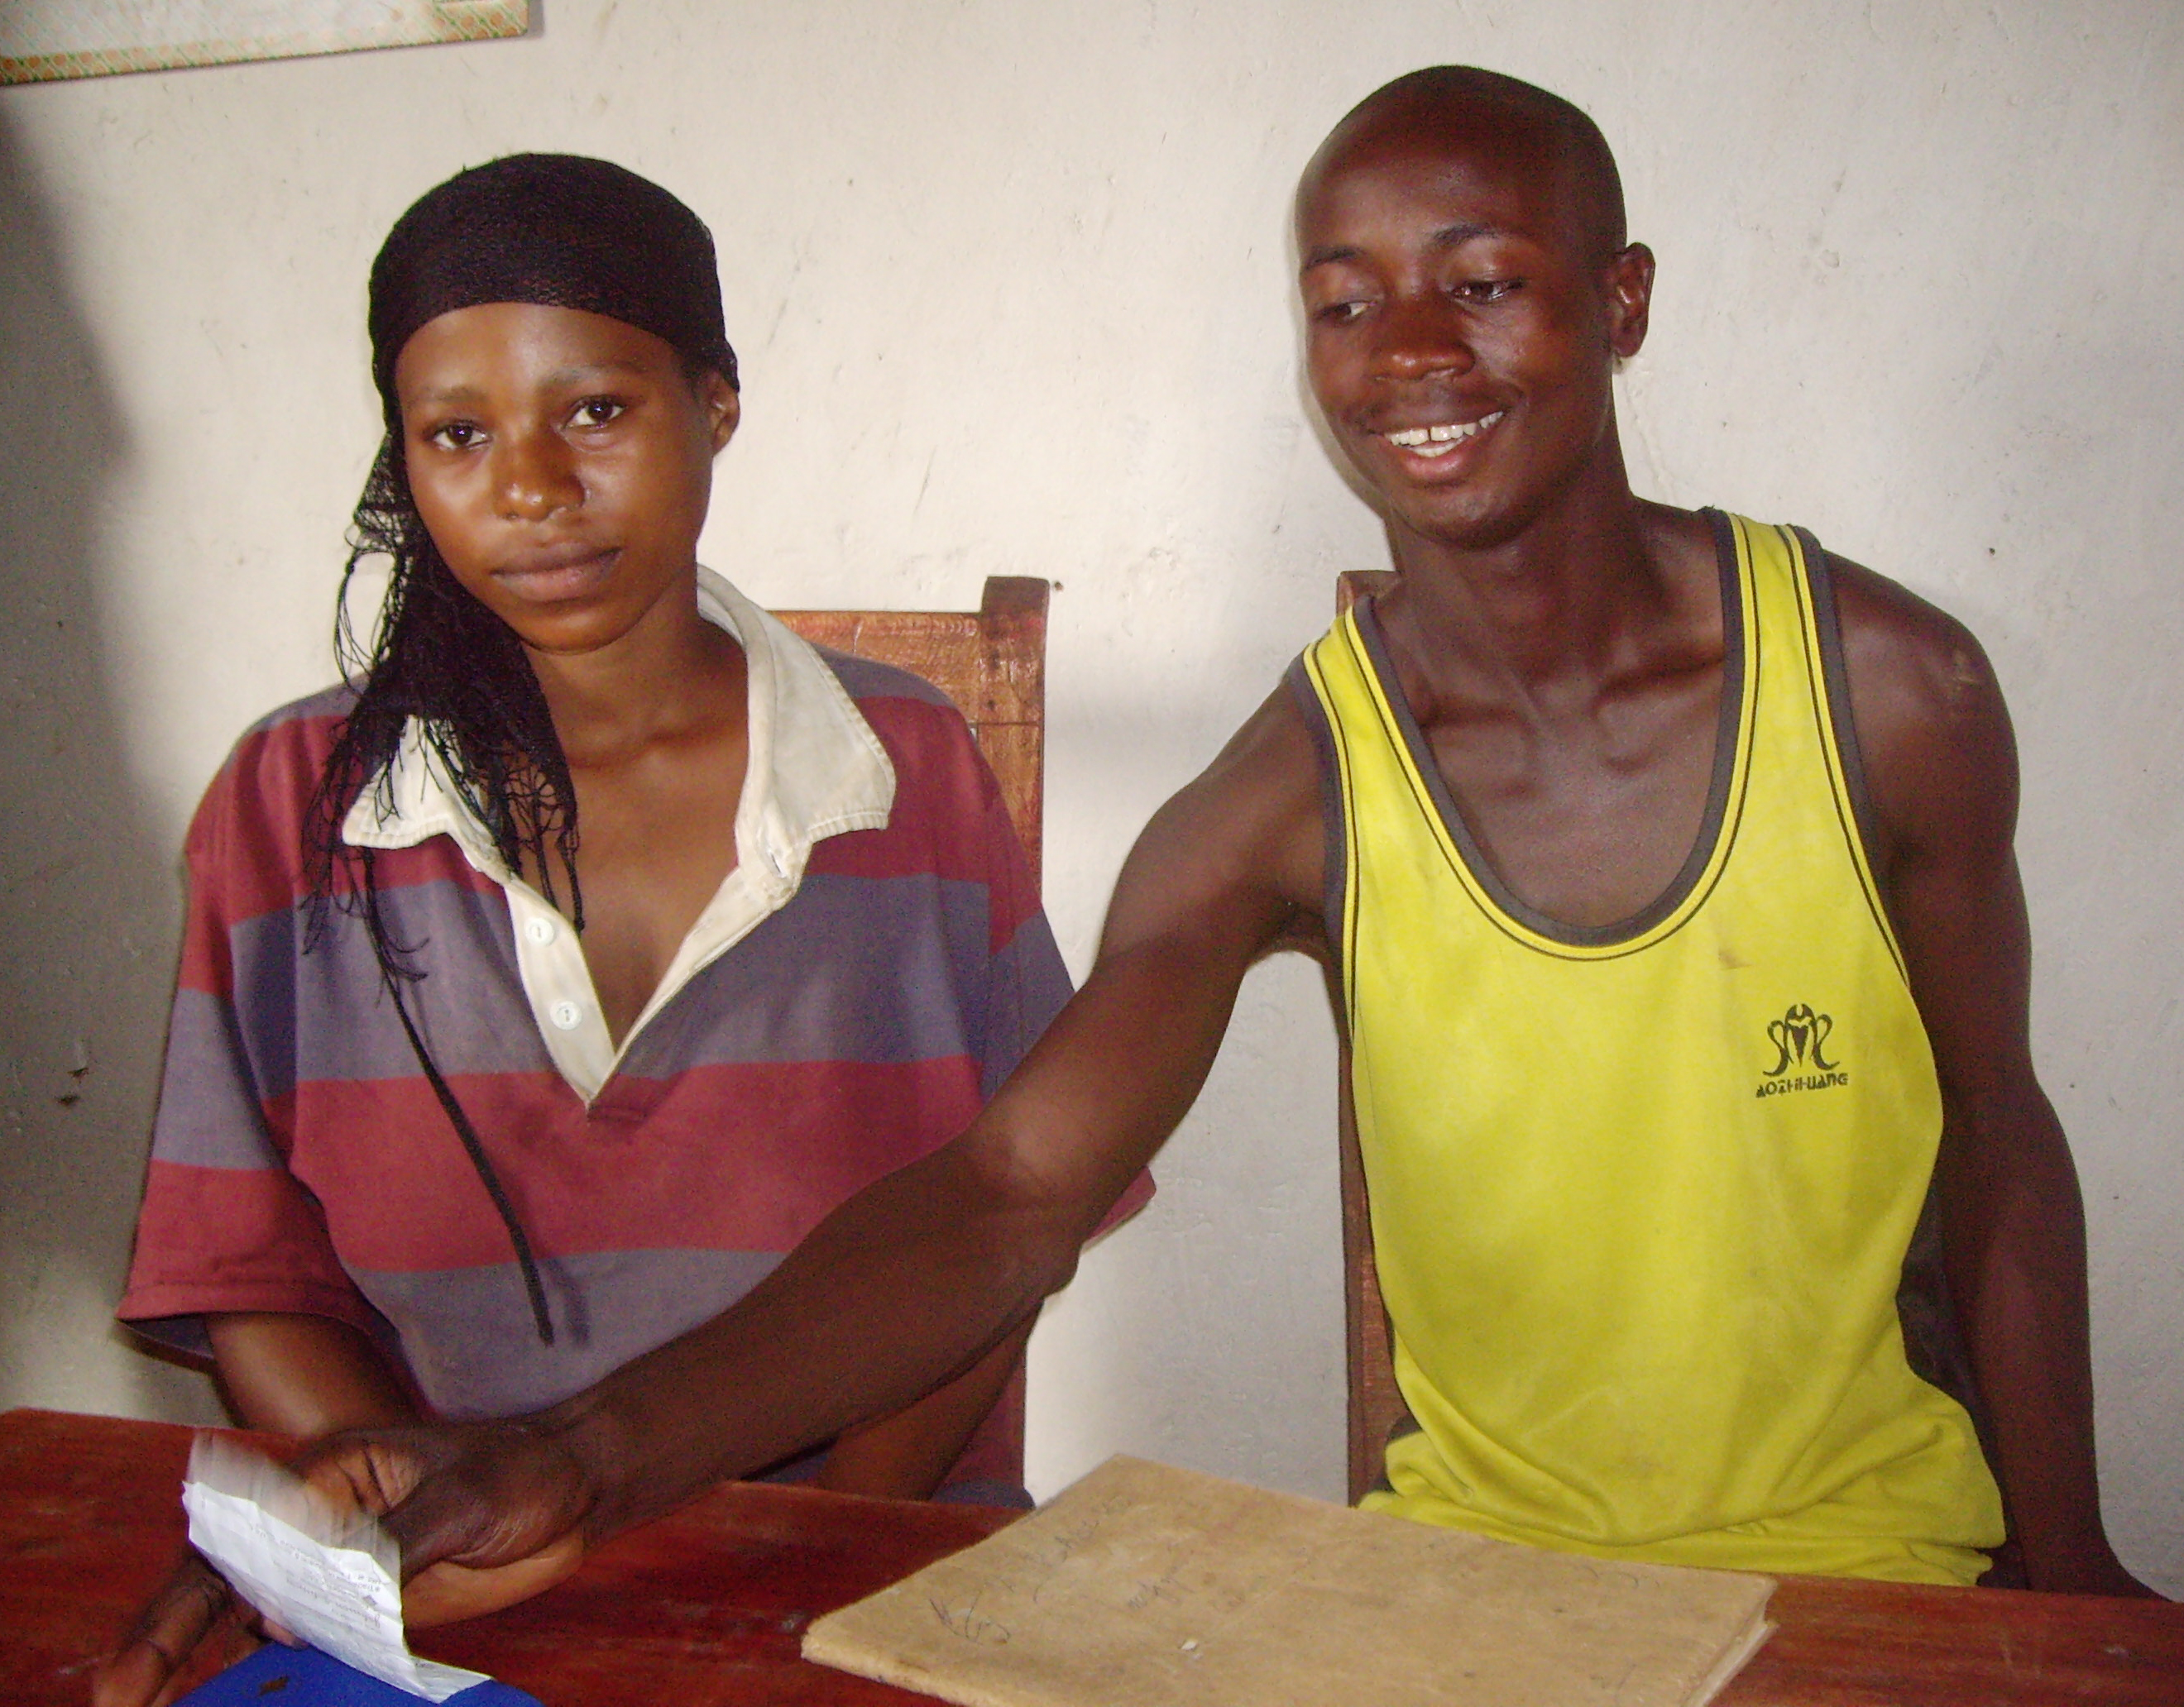 Elias Bizimana, 25, and his 19-year-old wife Beatrice Uwimana have 10 years' fighting experience between them, Burundi, 4 June 2007. They were combatants for the then rebel Conseil national pour la défense de la démocratie-Forces pour la défense de l